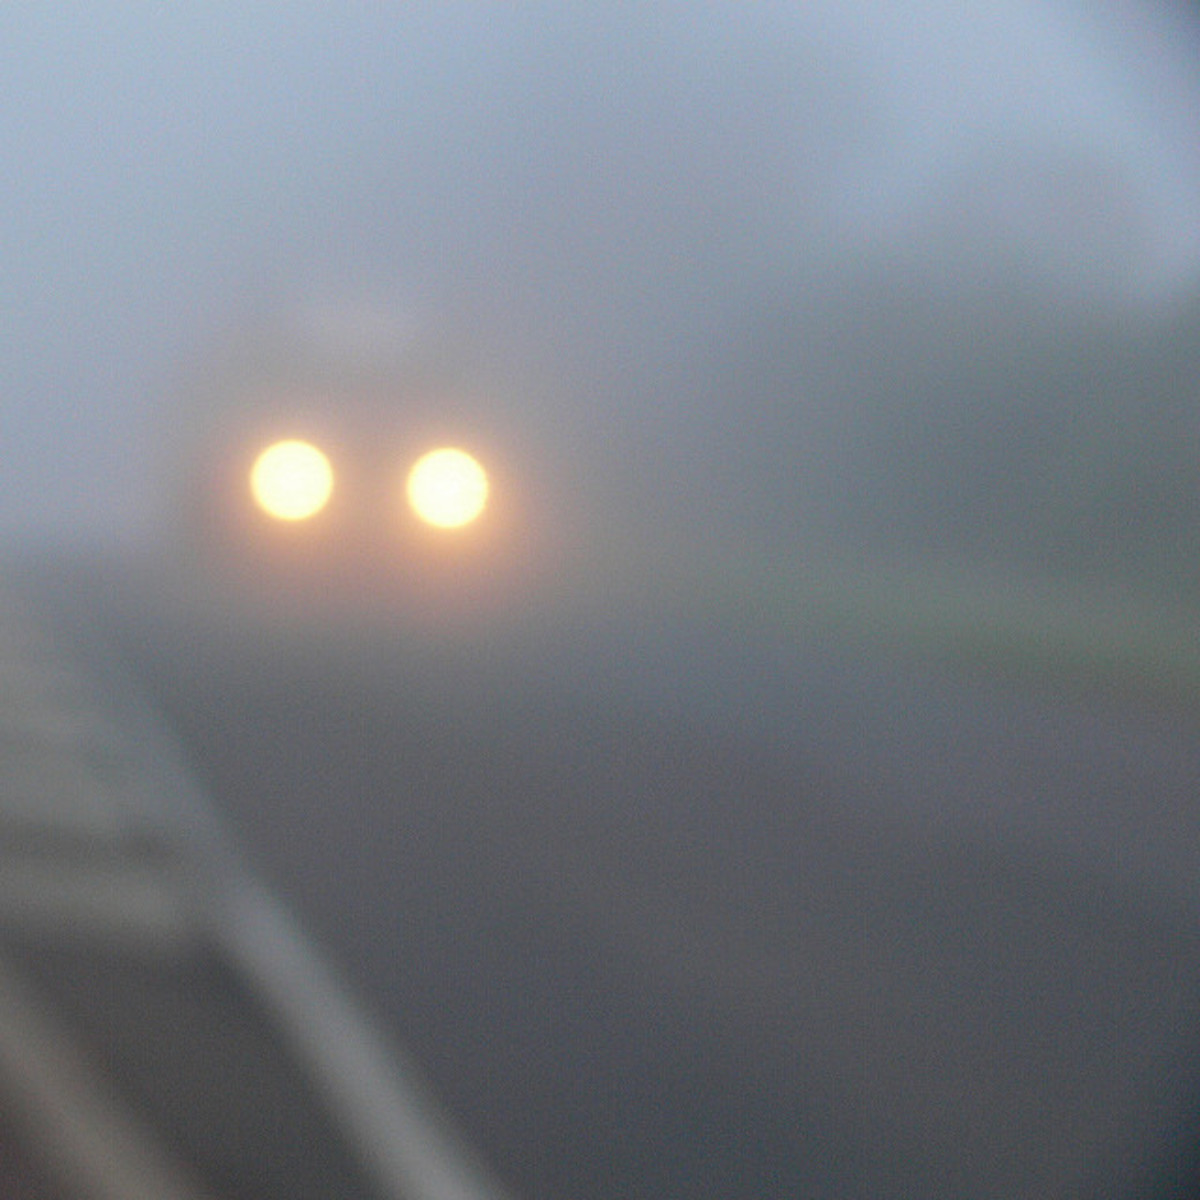 There was nothing but the encroaching fog on each side of the road and an unfamiliar hill.